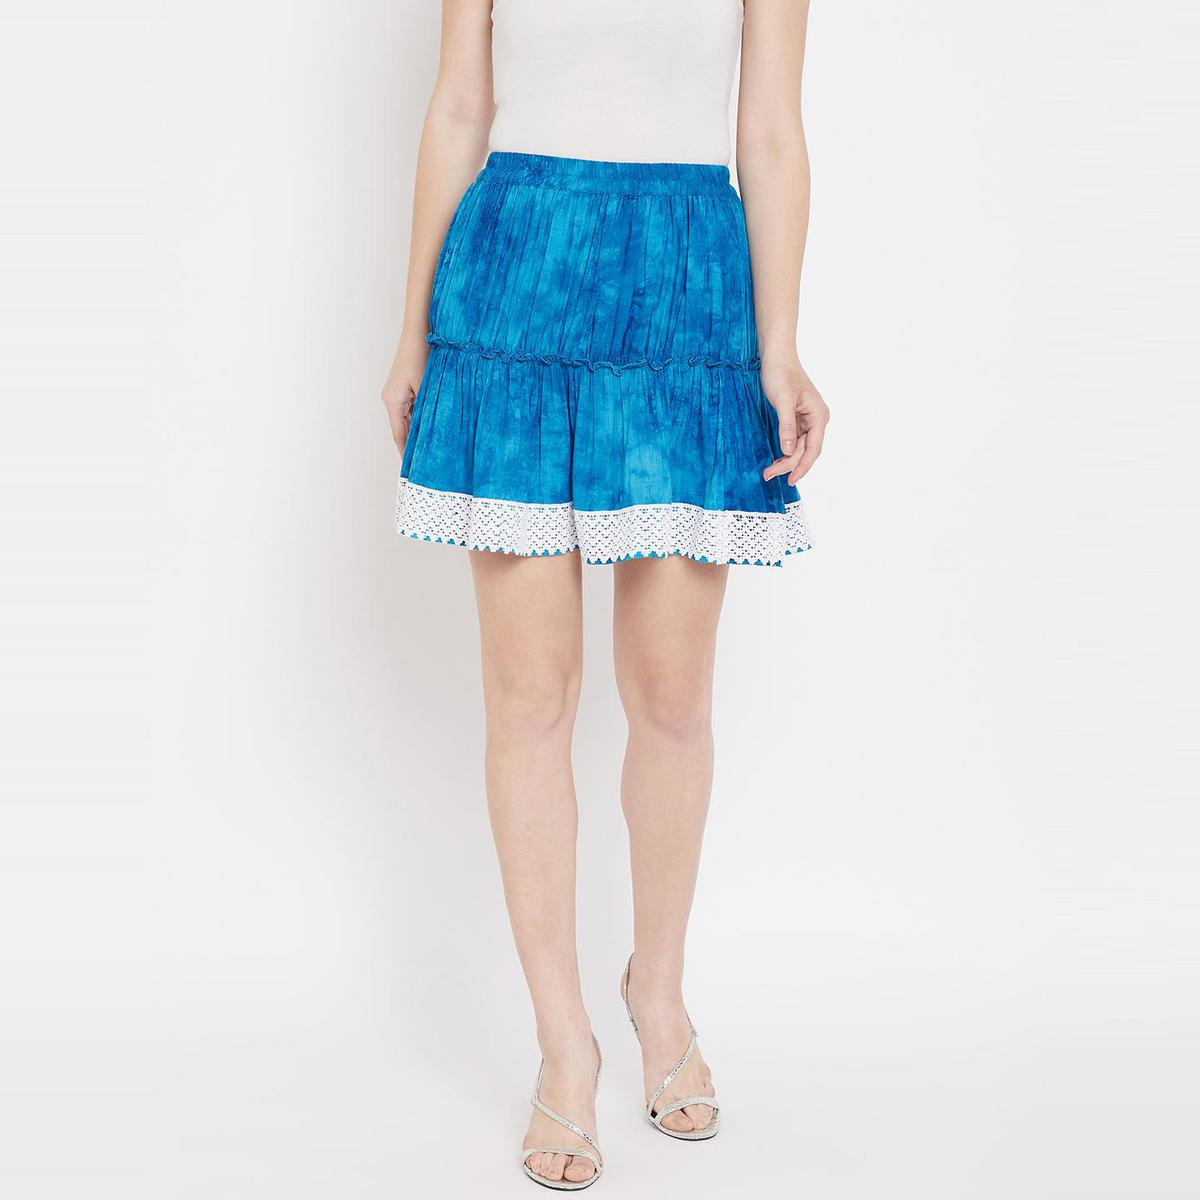 Lucero - Aqua Blue Colored Casual Printed Double Layred Lace Detailing Viscose Rayon Short Skirt